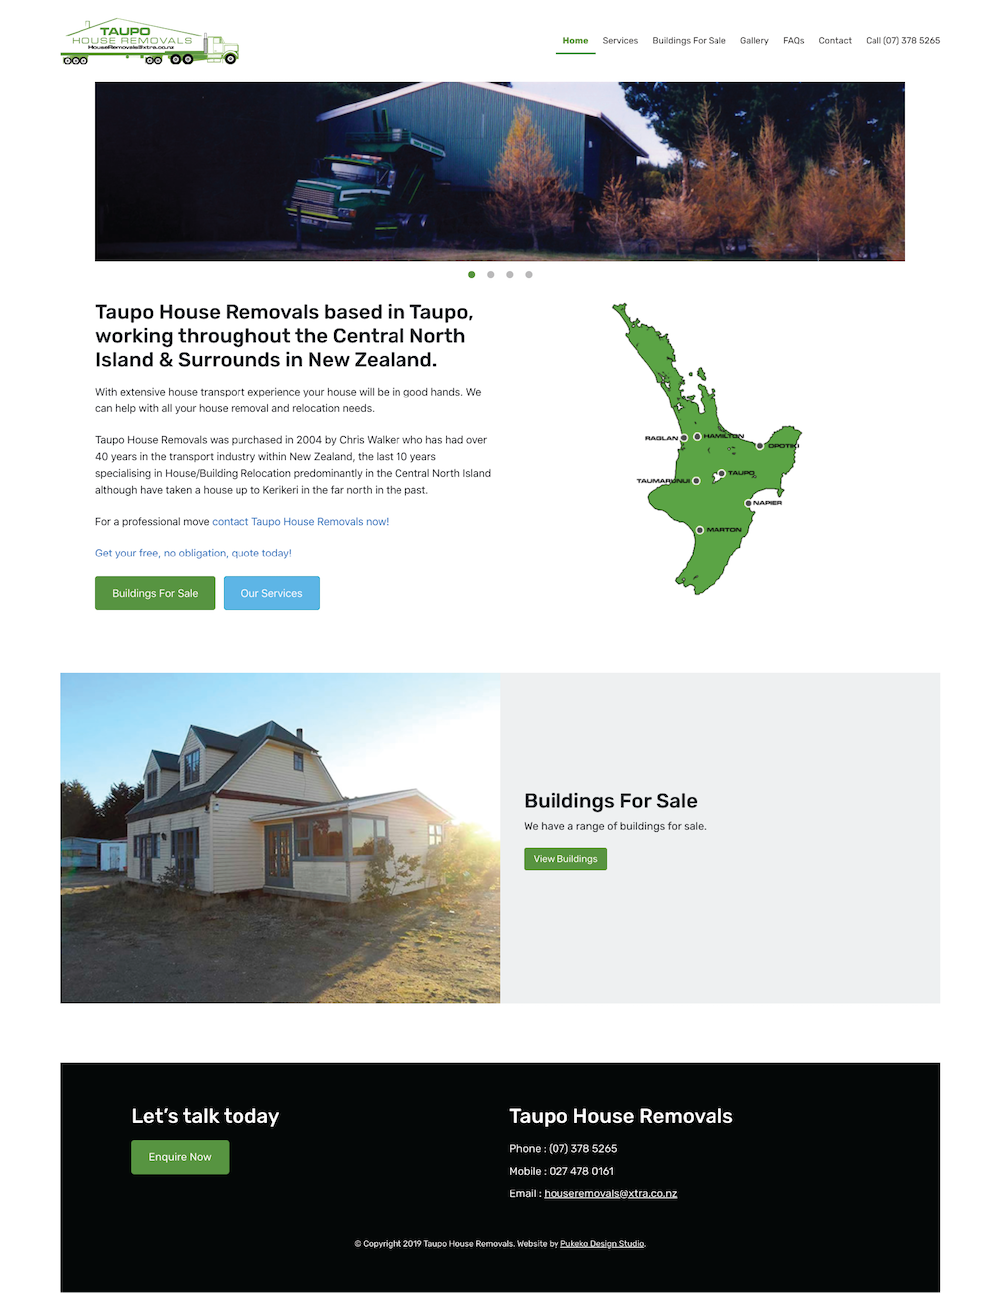 Taupo House Removals Website